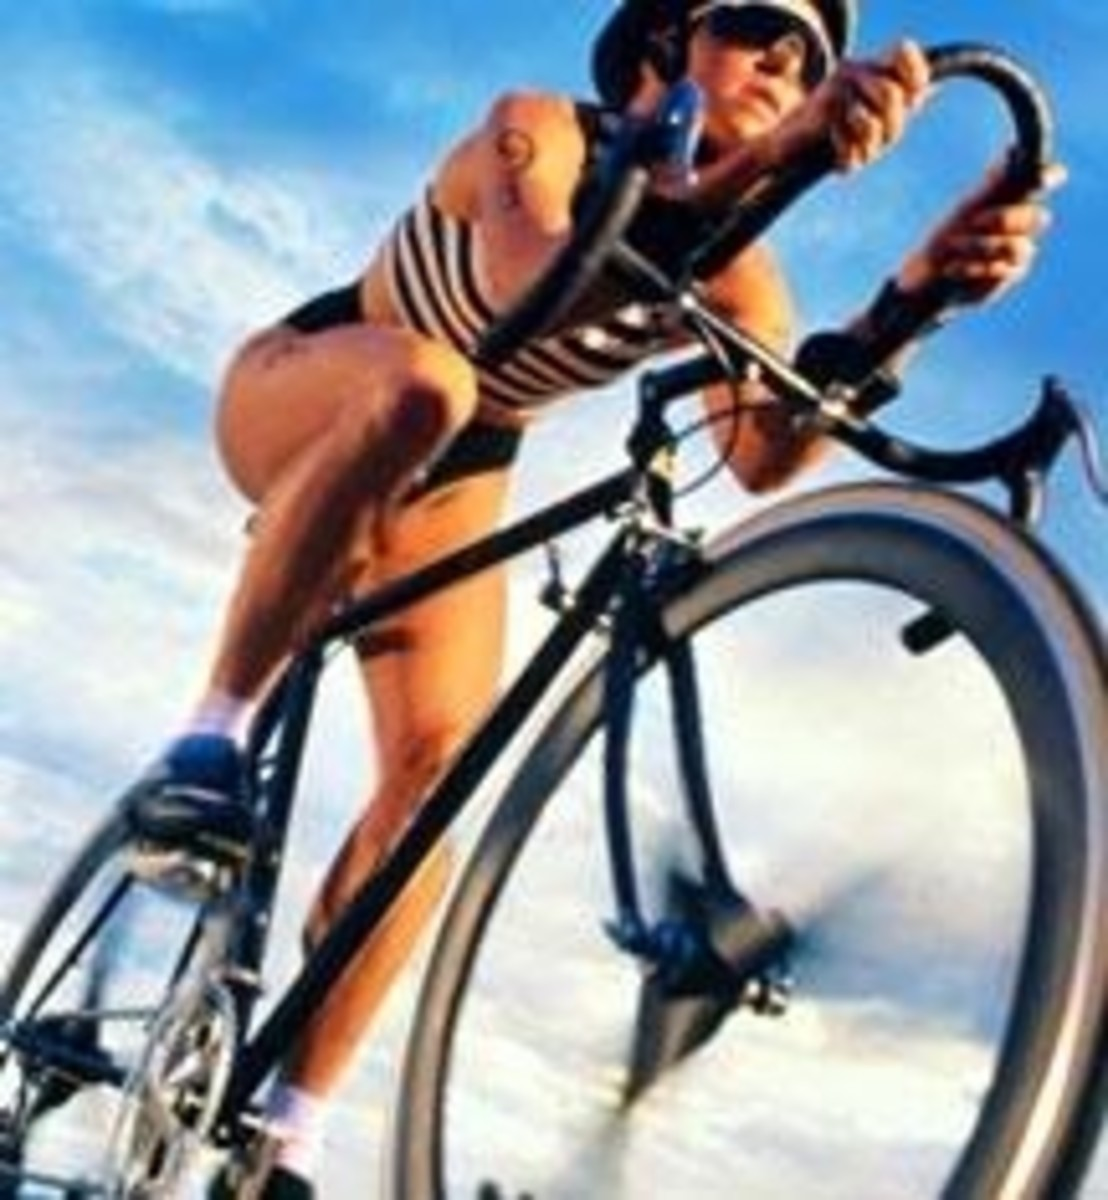 Best Exercise To Lose Weight Fast Is Cycling